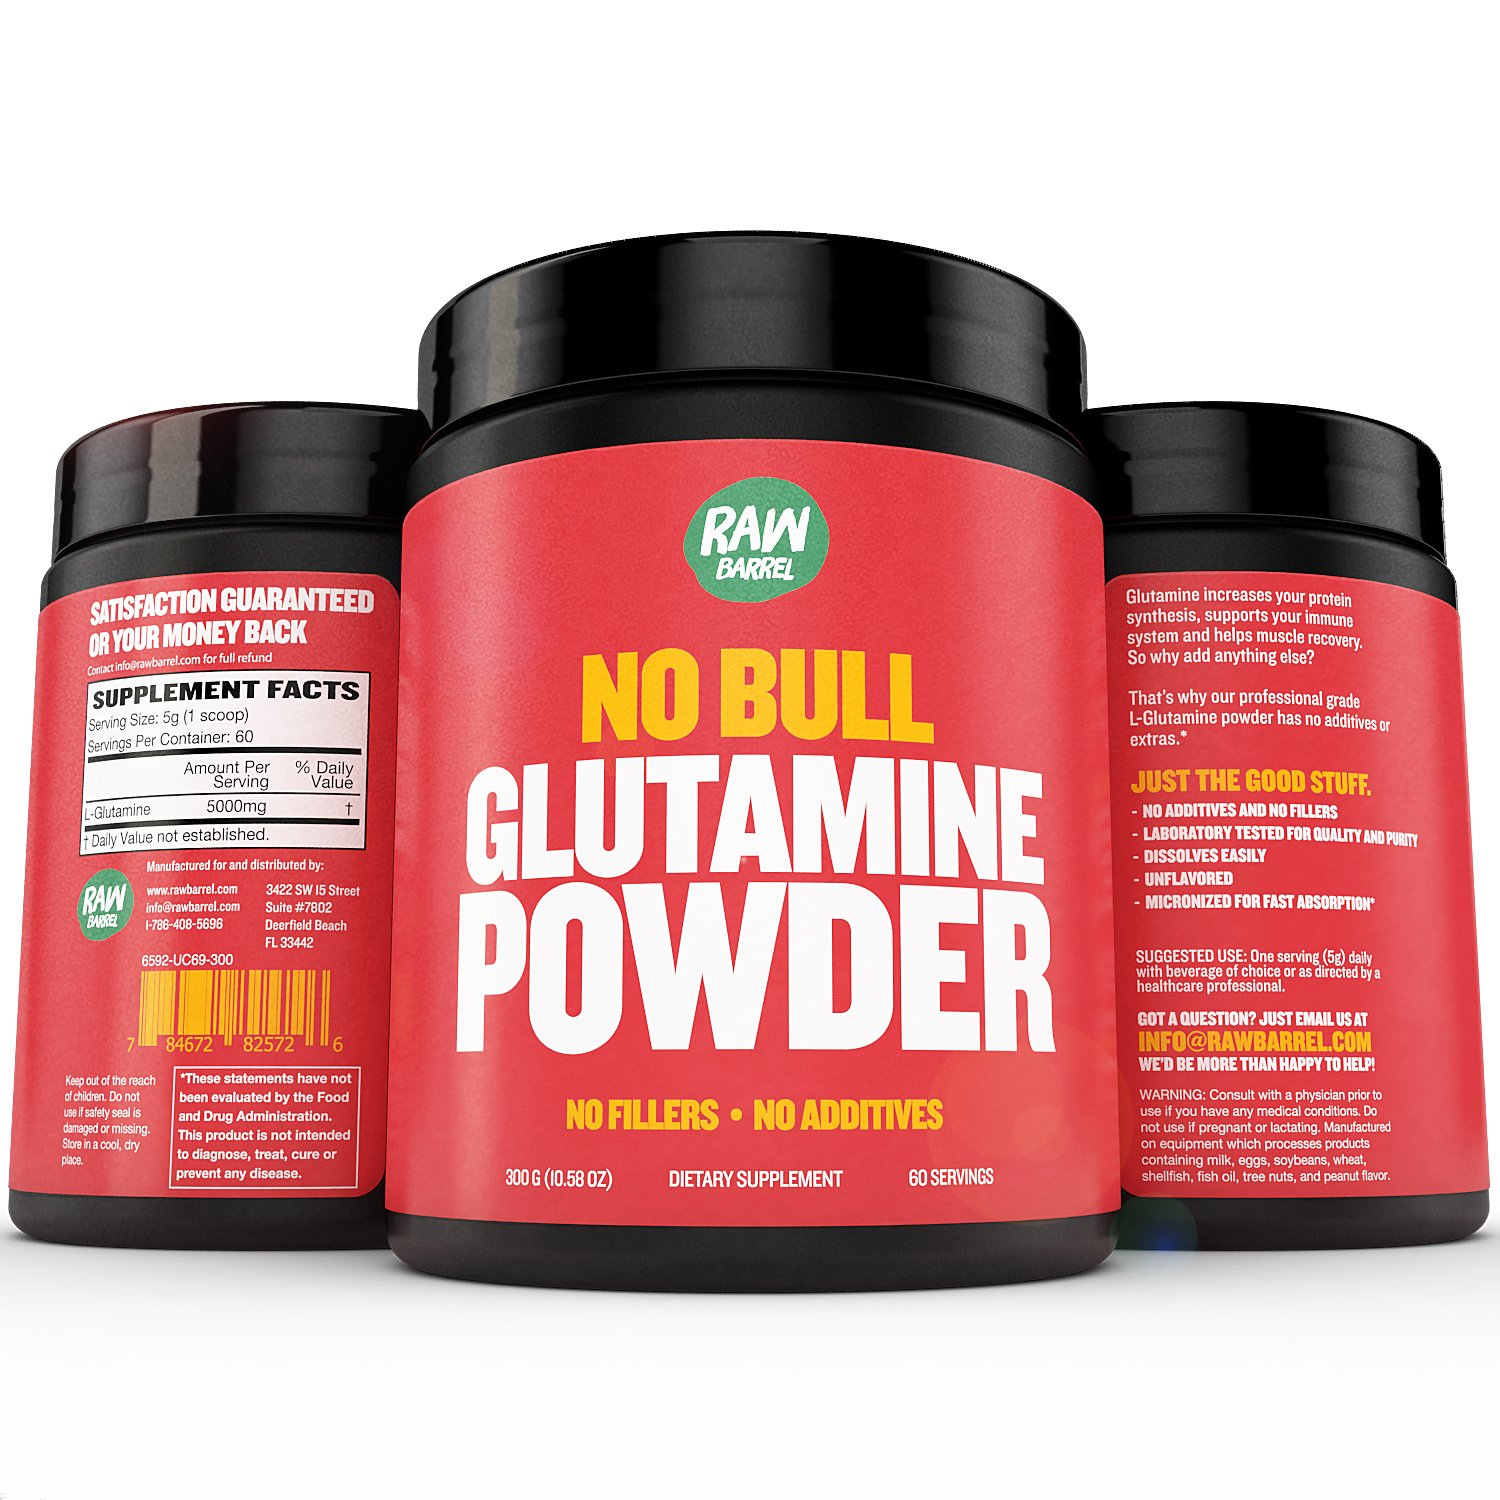 Raw Barrels - Pure L Glutamine Powder - Unflavored and Micronized - 300g, 60 Servings by Raw Barrel